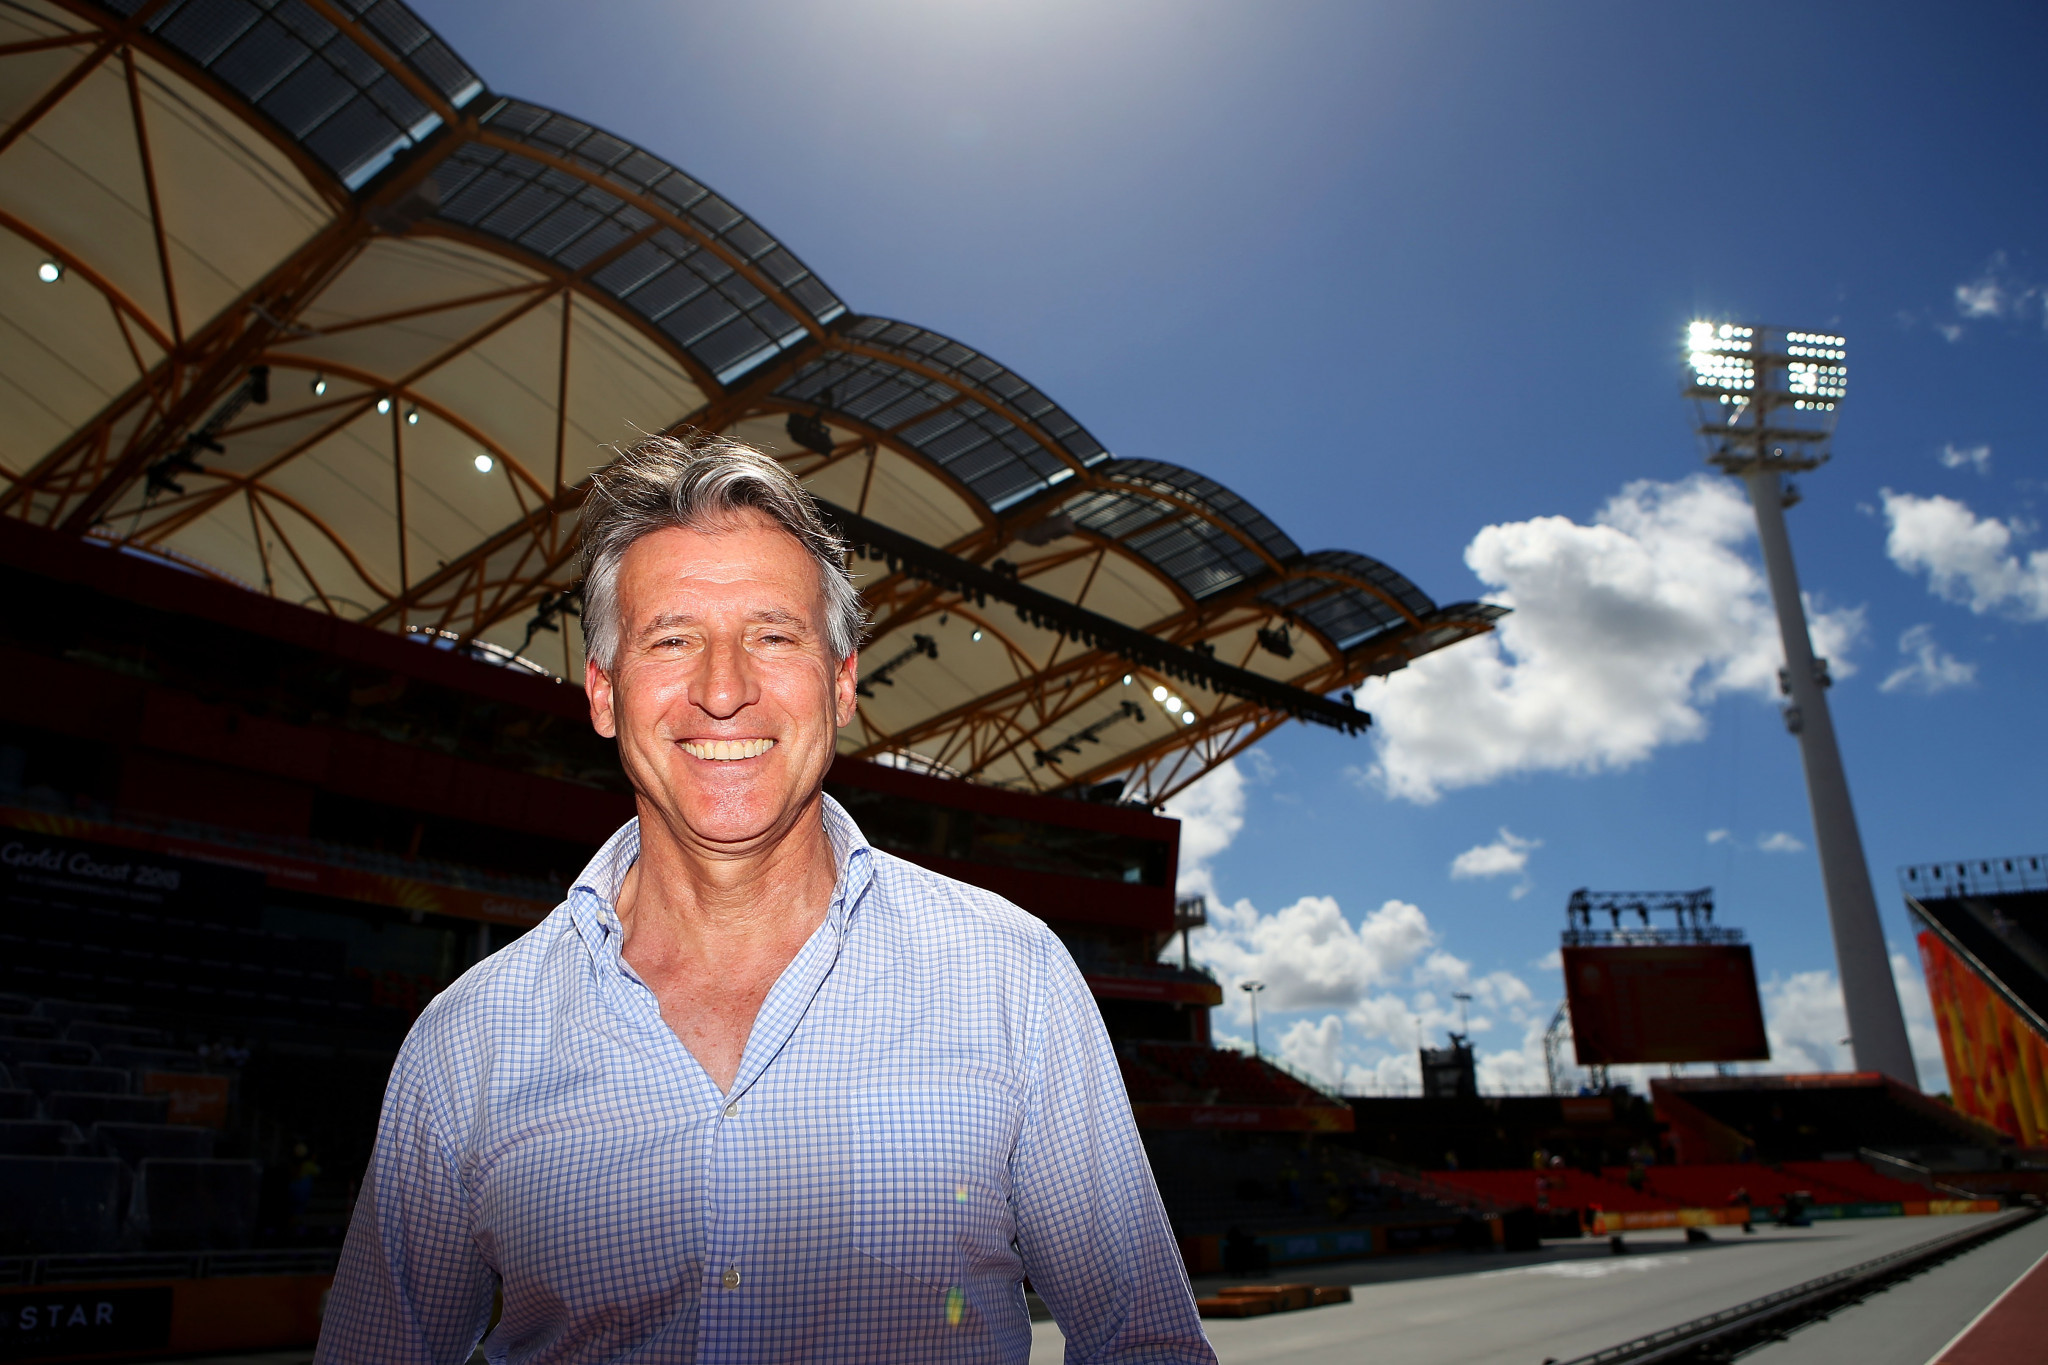 Coe welcomes prospect of Queensland bid for IAAF World Championships after success of Gold Coast 2018